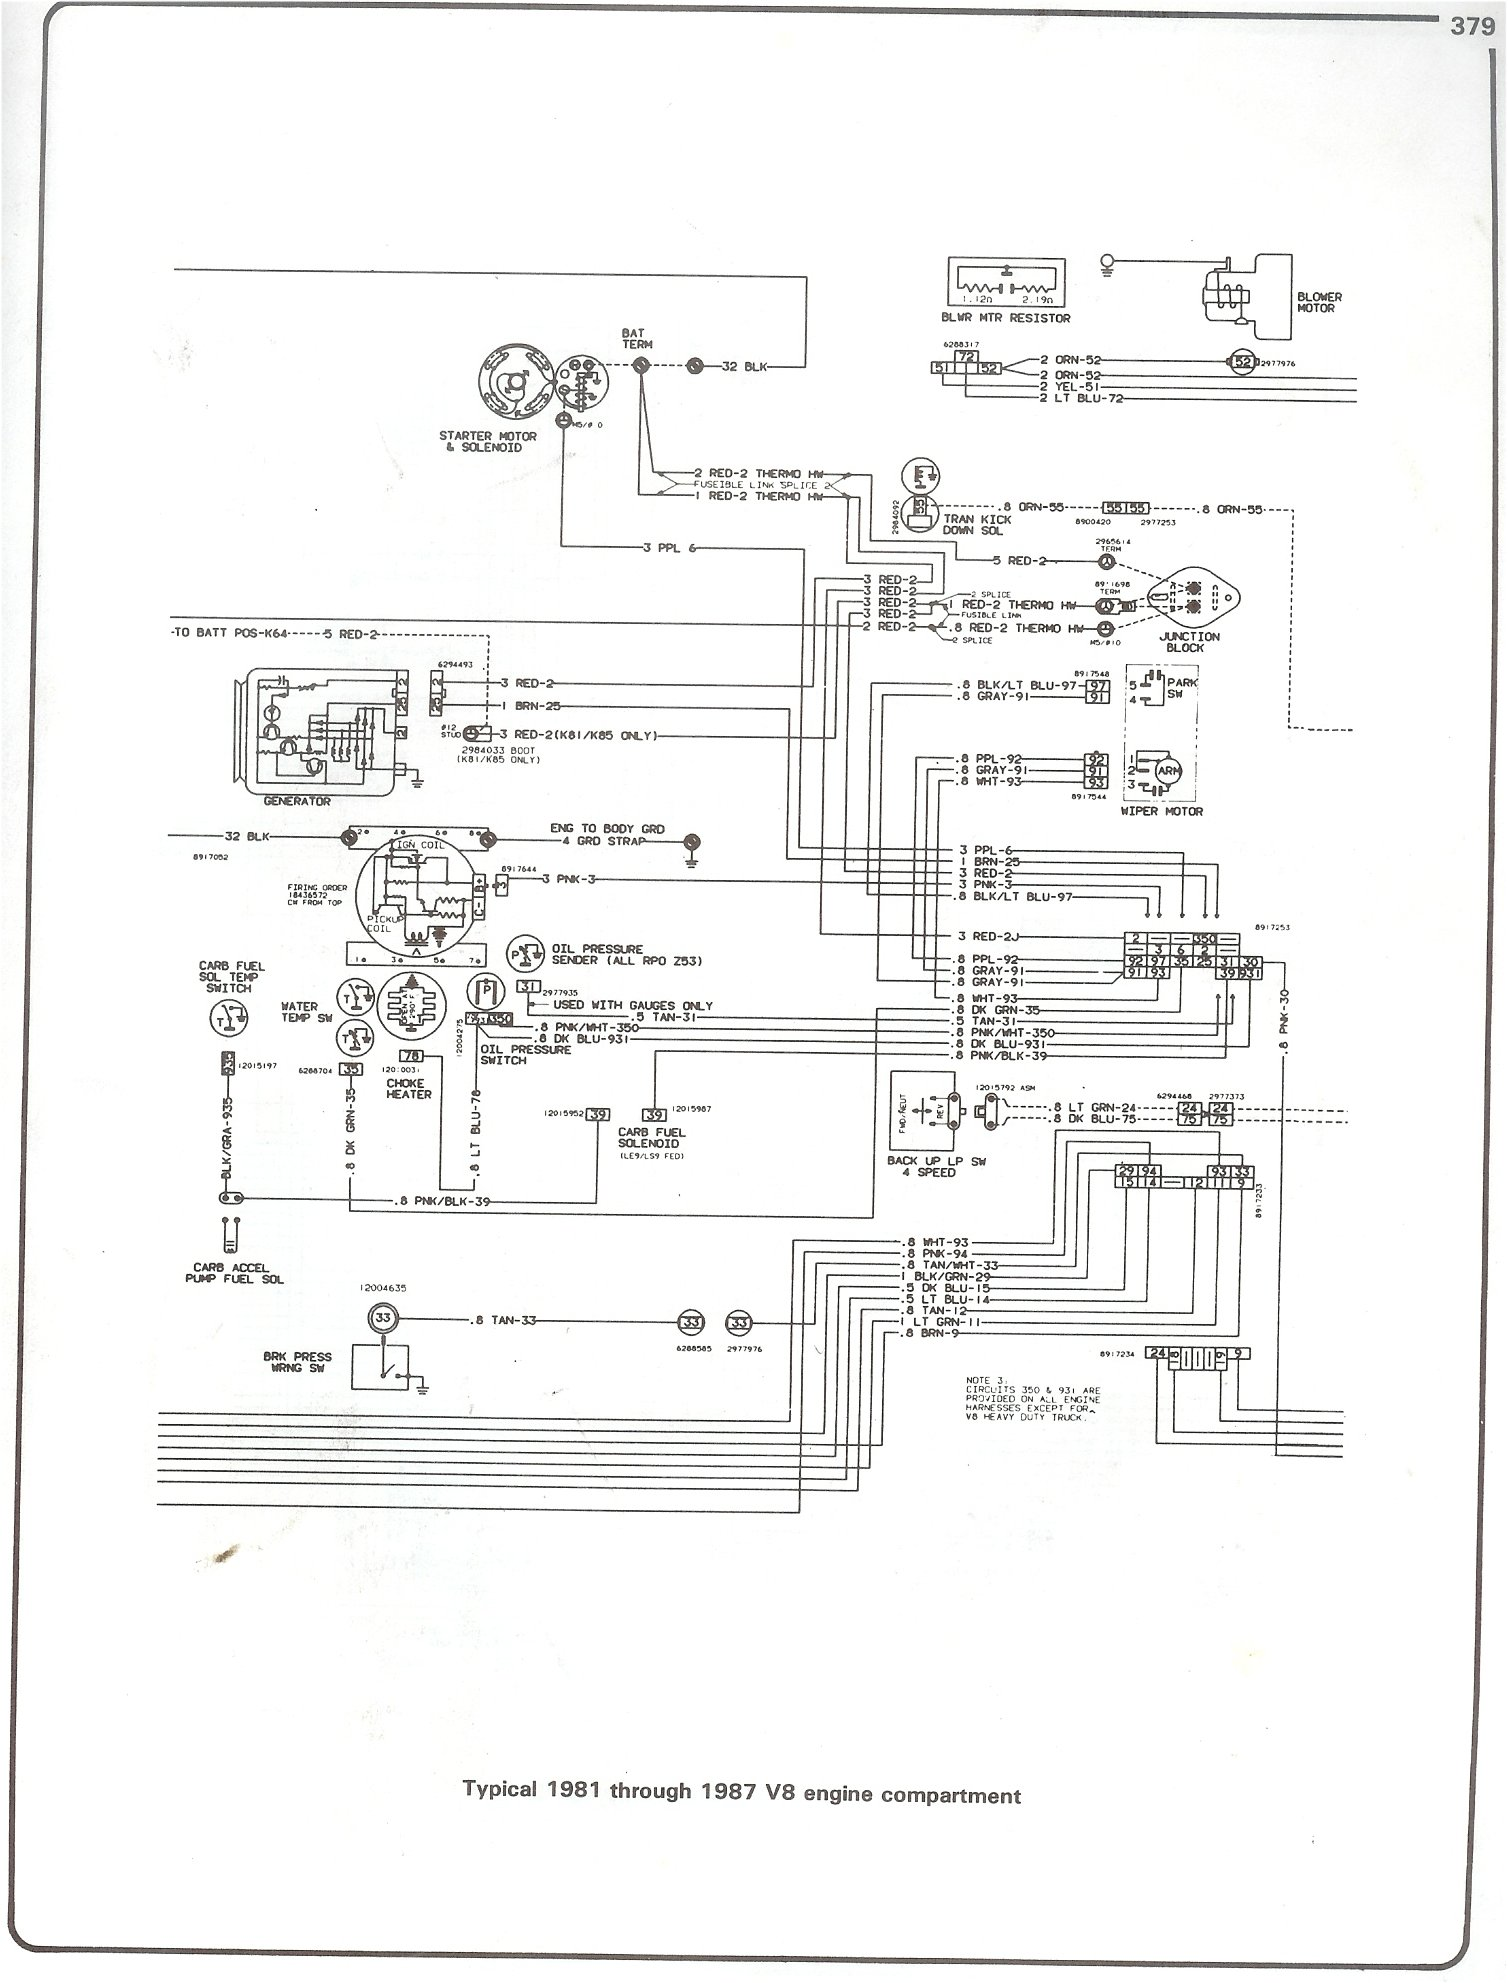 81 87_V8_engine complete 73 87 wiring diagrams  at alyssarenee.co